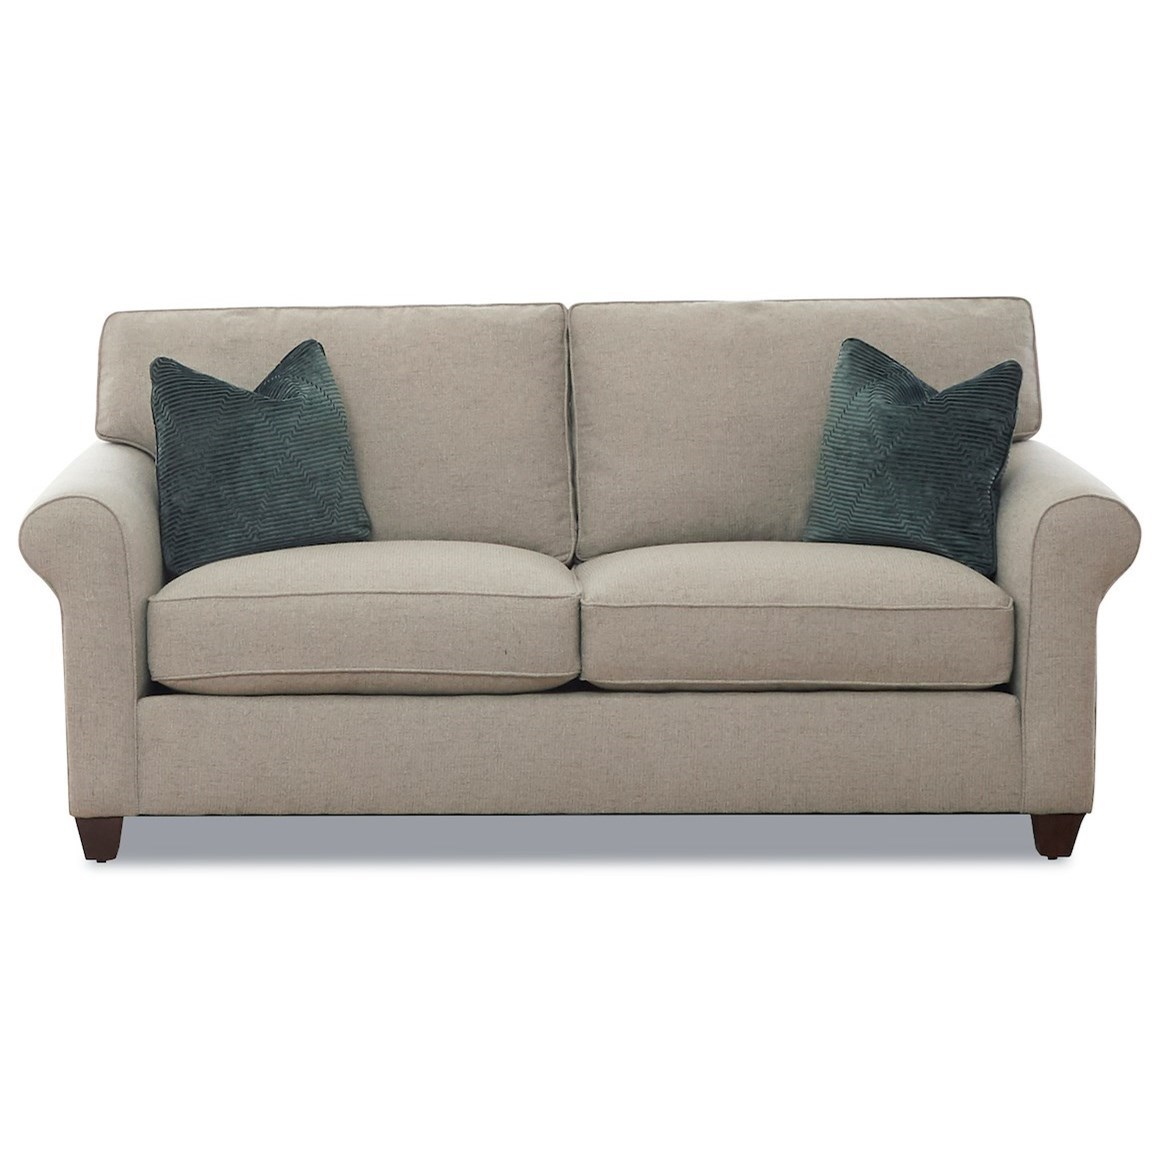 Lillington Distinctions  Stationary Sofa by Klaussner at Northeast Factory Direct